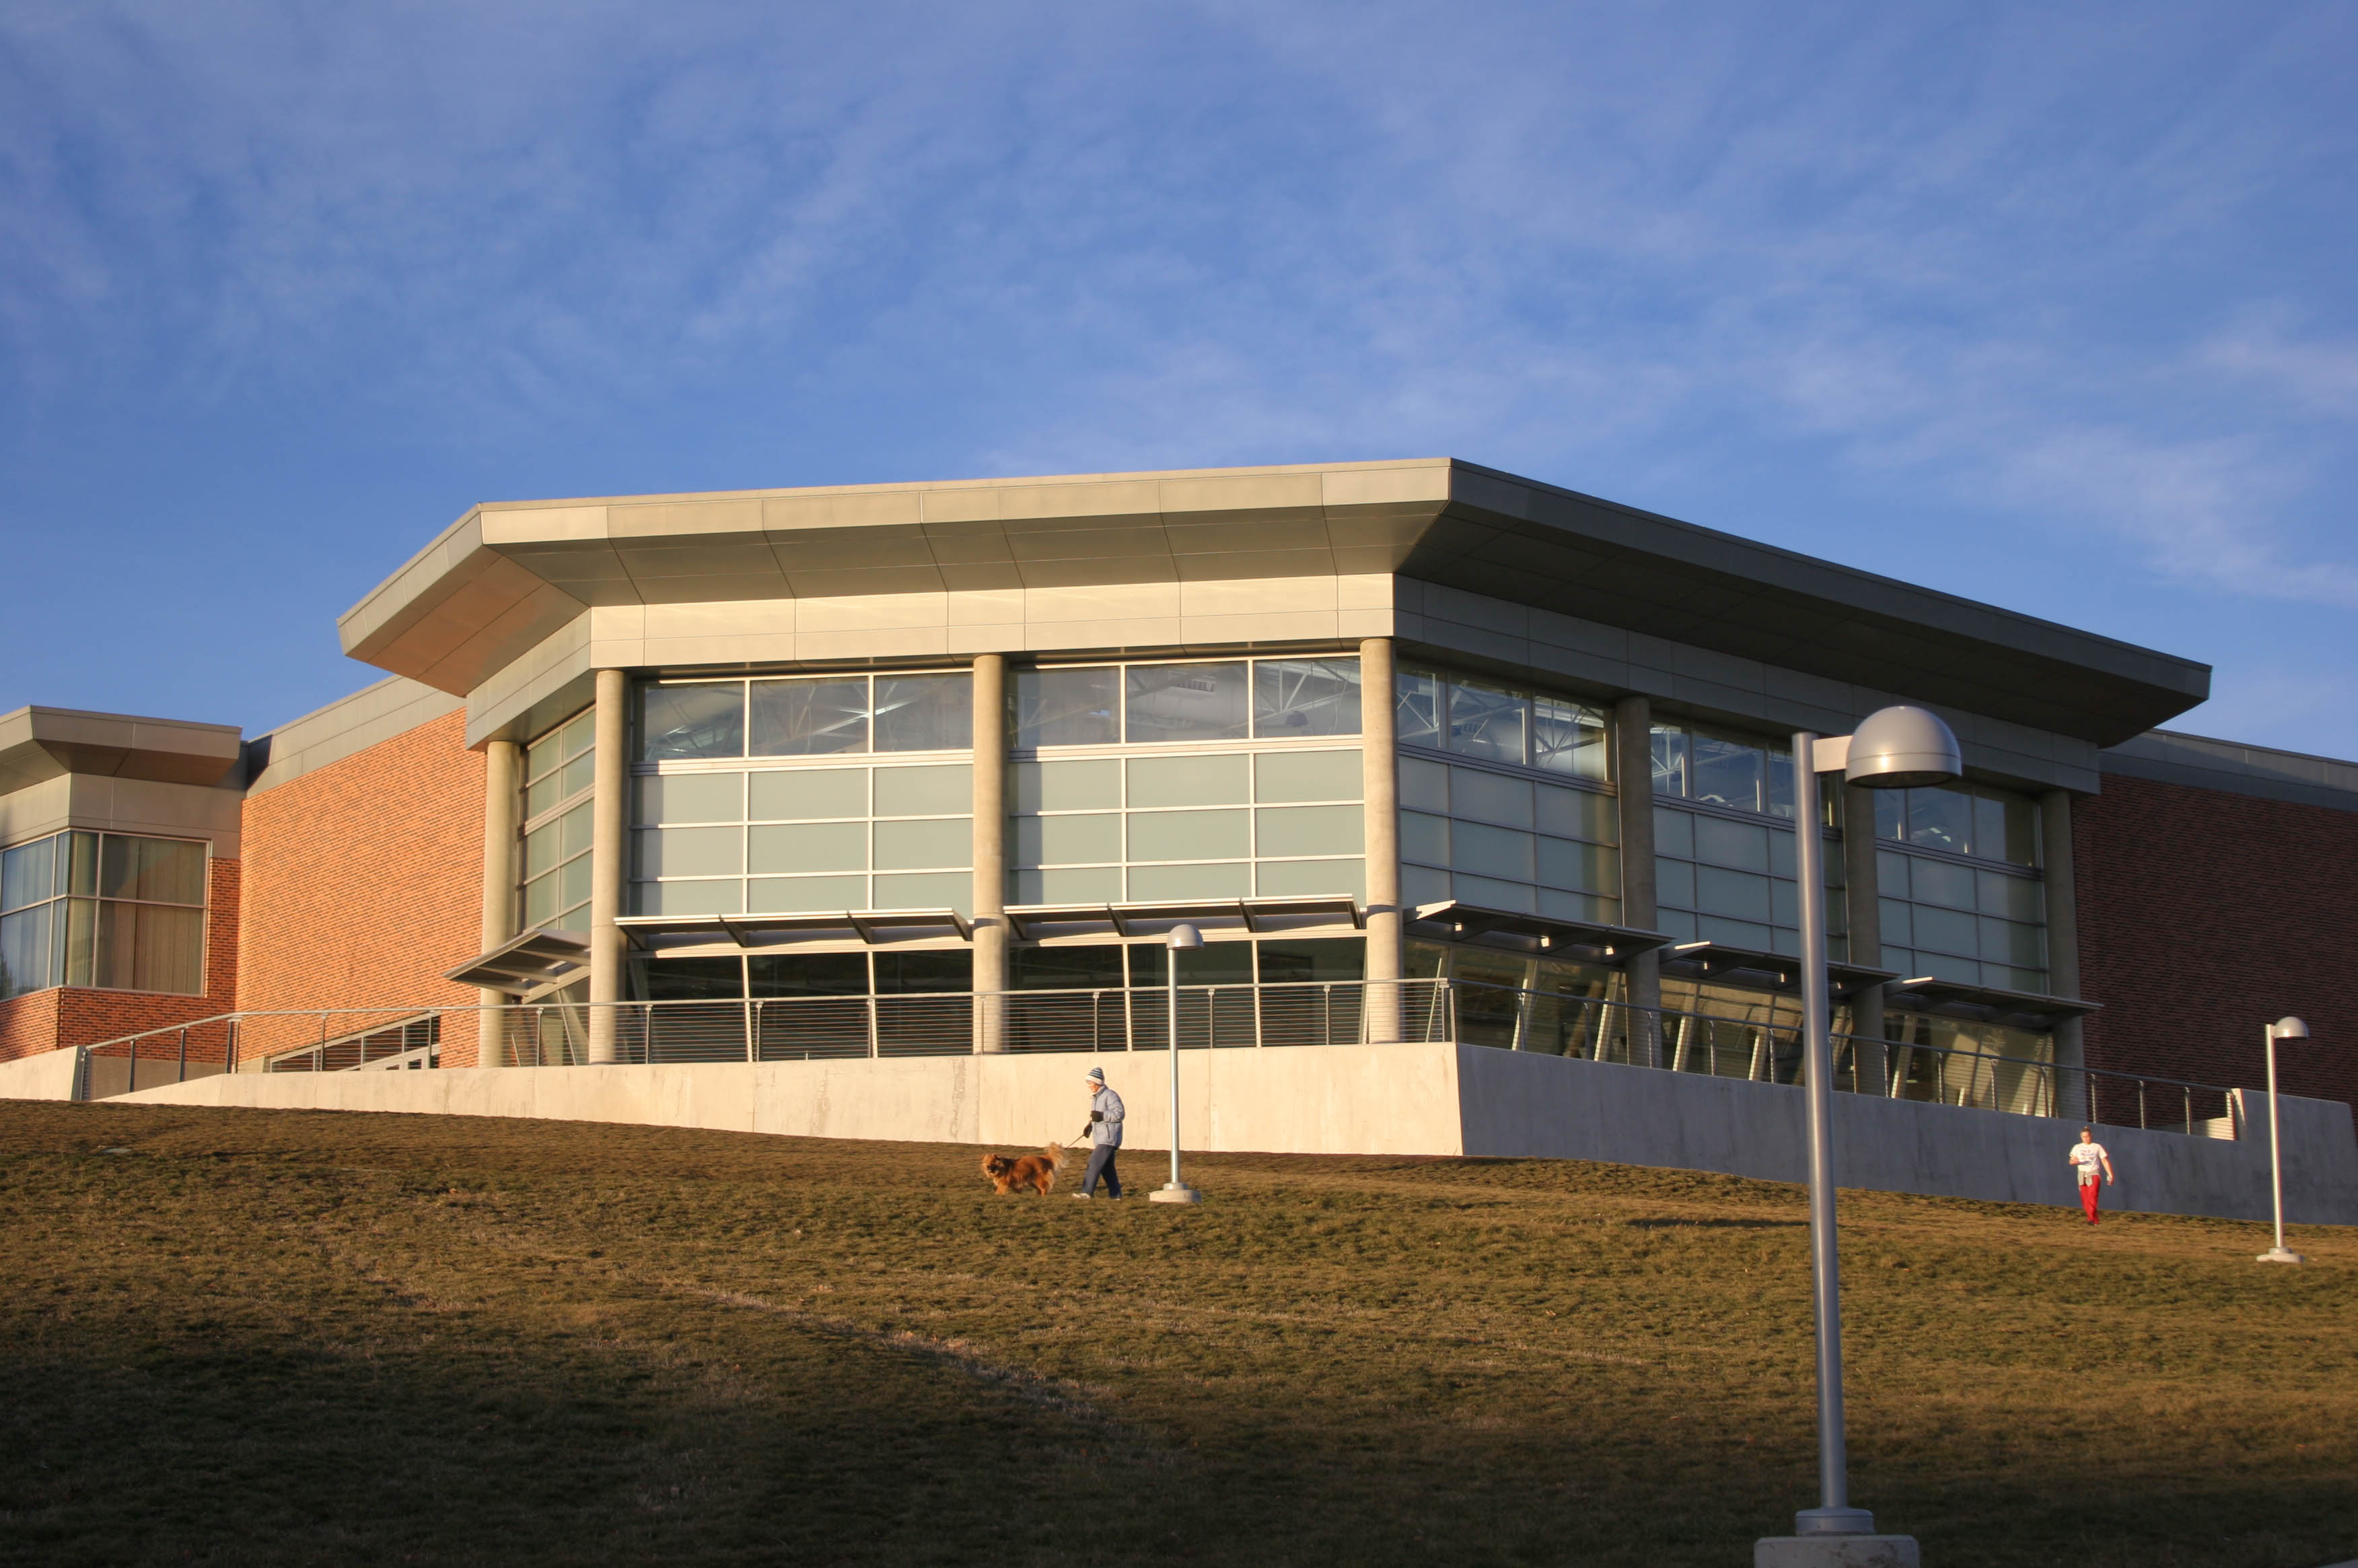 Exterior photo of the Student Recreation Center